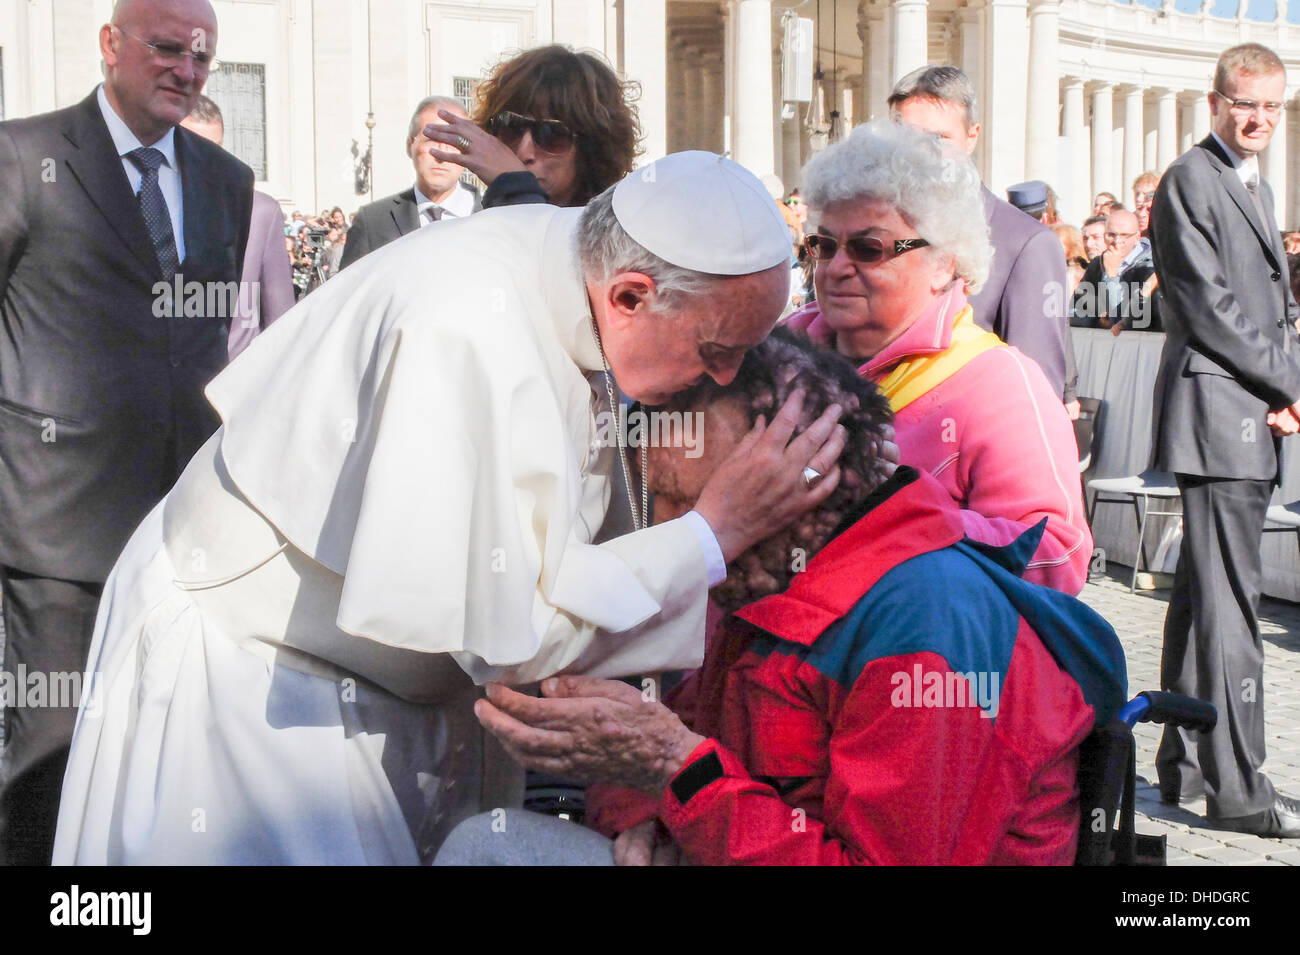 Vatican, Rome, Italy. 06th Nov, 2013. Vatican Pope Francis, general audience 06 November 2013 Pope Francis hug and bless a person sick of neurofibromatosis during the general audience of 6 November in St Peter square © Realy Easy Star/Alamy Live News - Stock Image